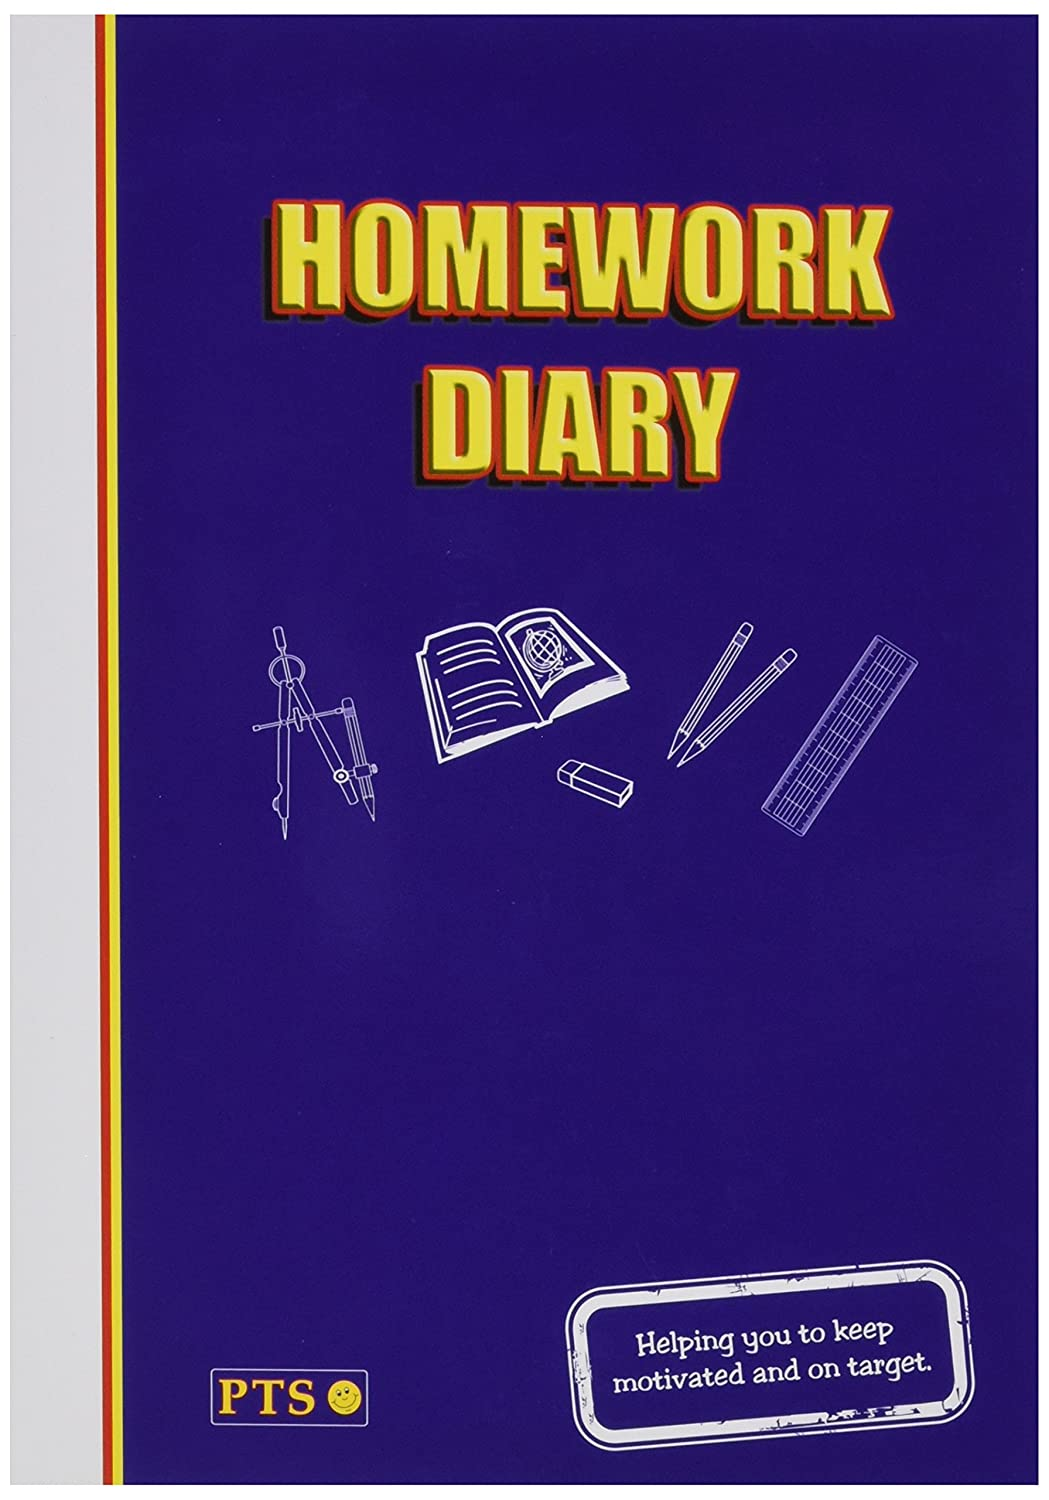 104 Page Homework Diary A5 - Primary Teaching Services Primary Teaching Services Ltd NHWB1